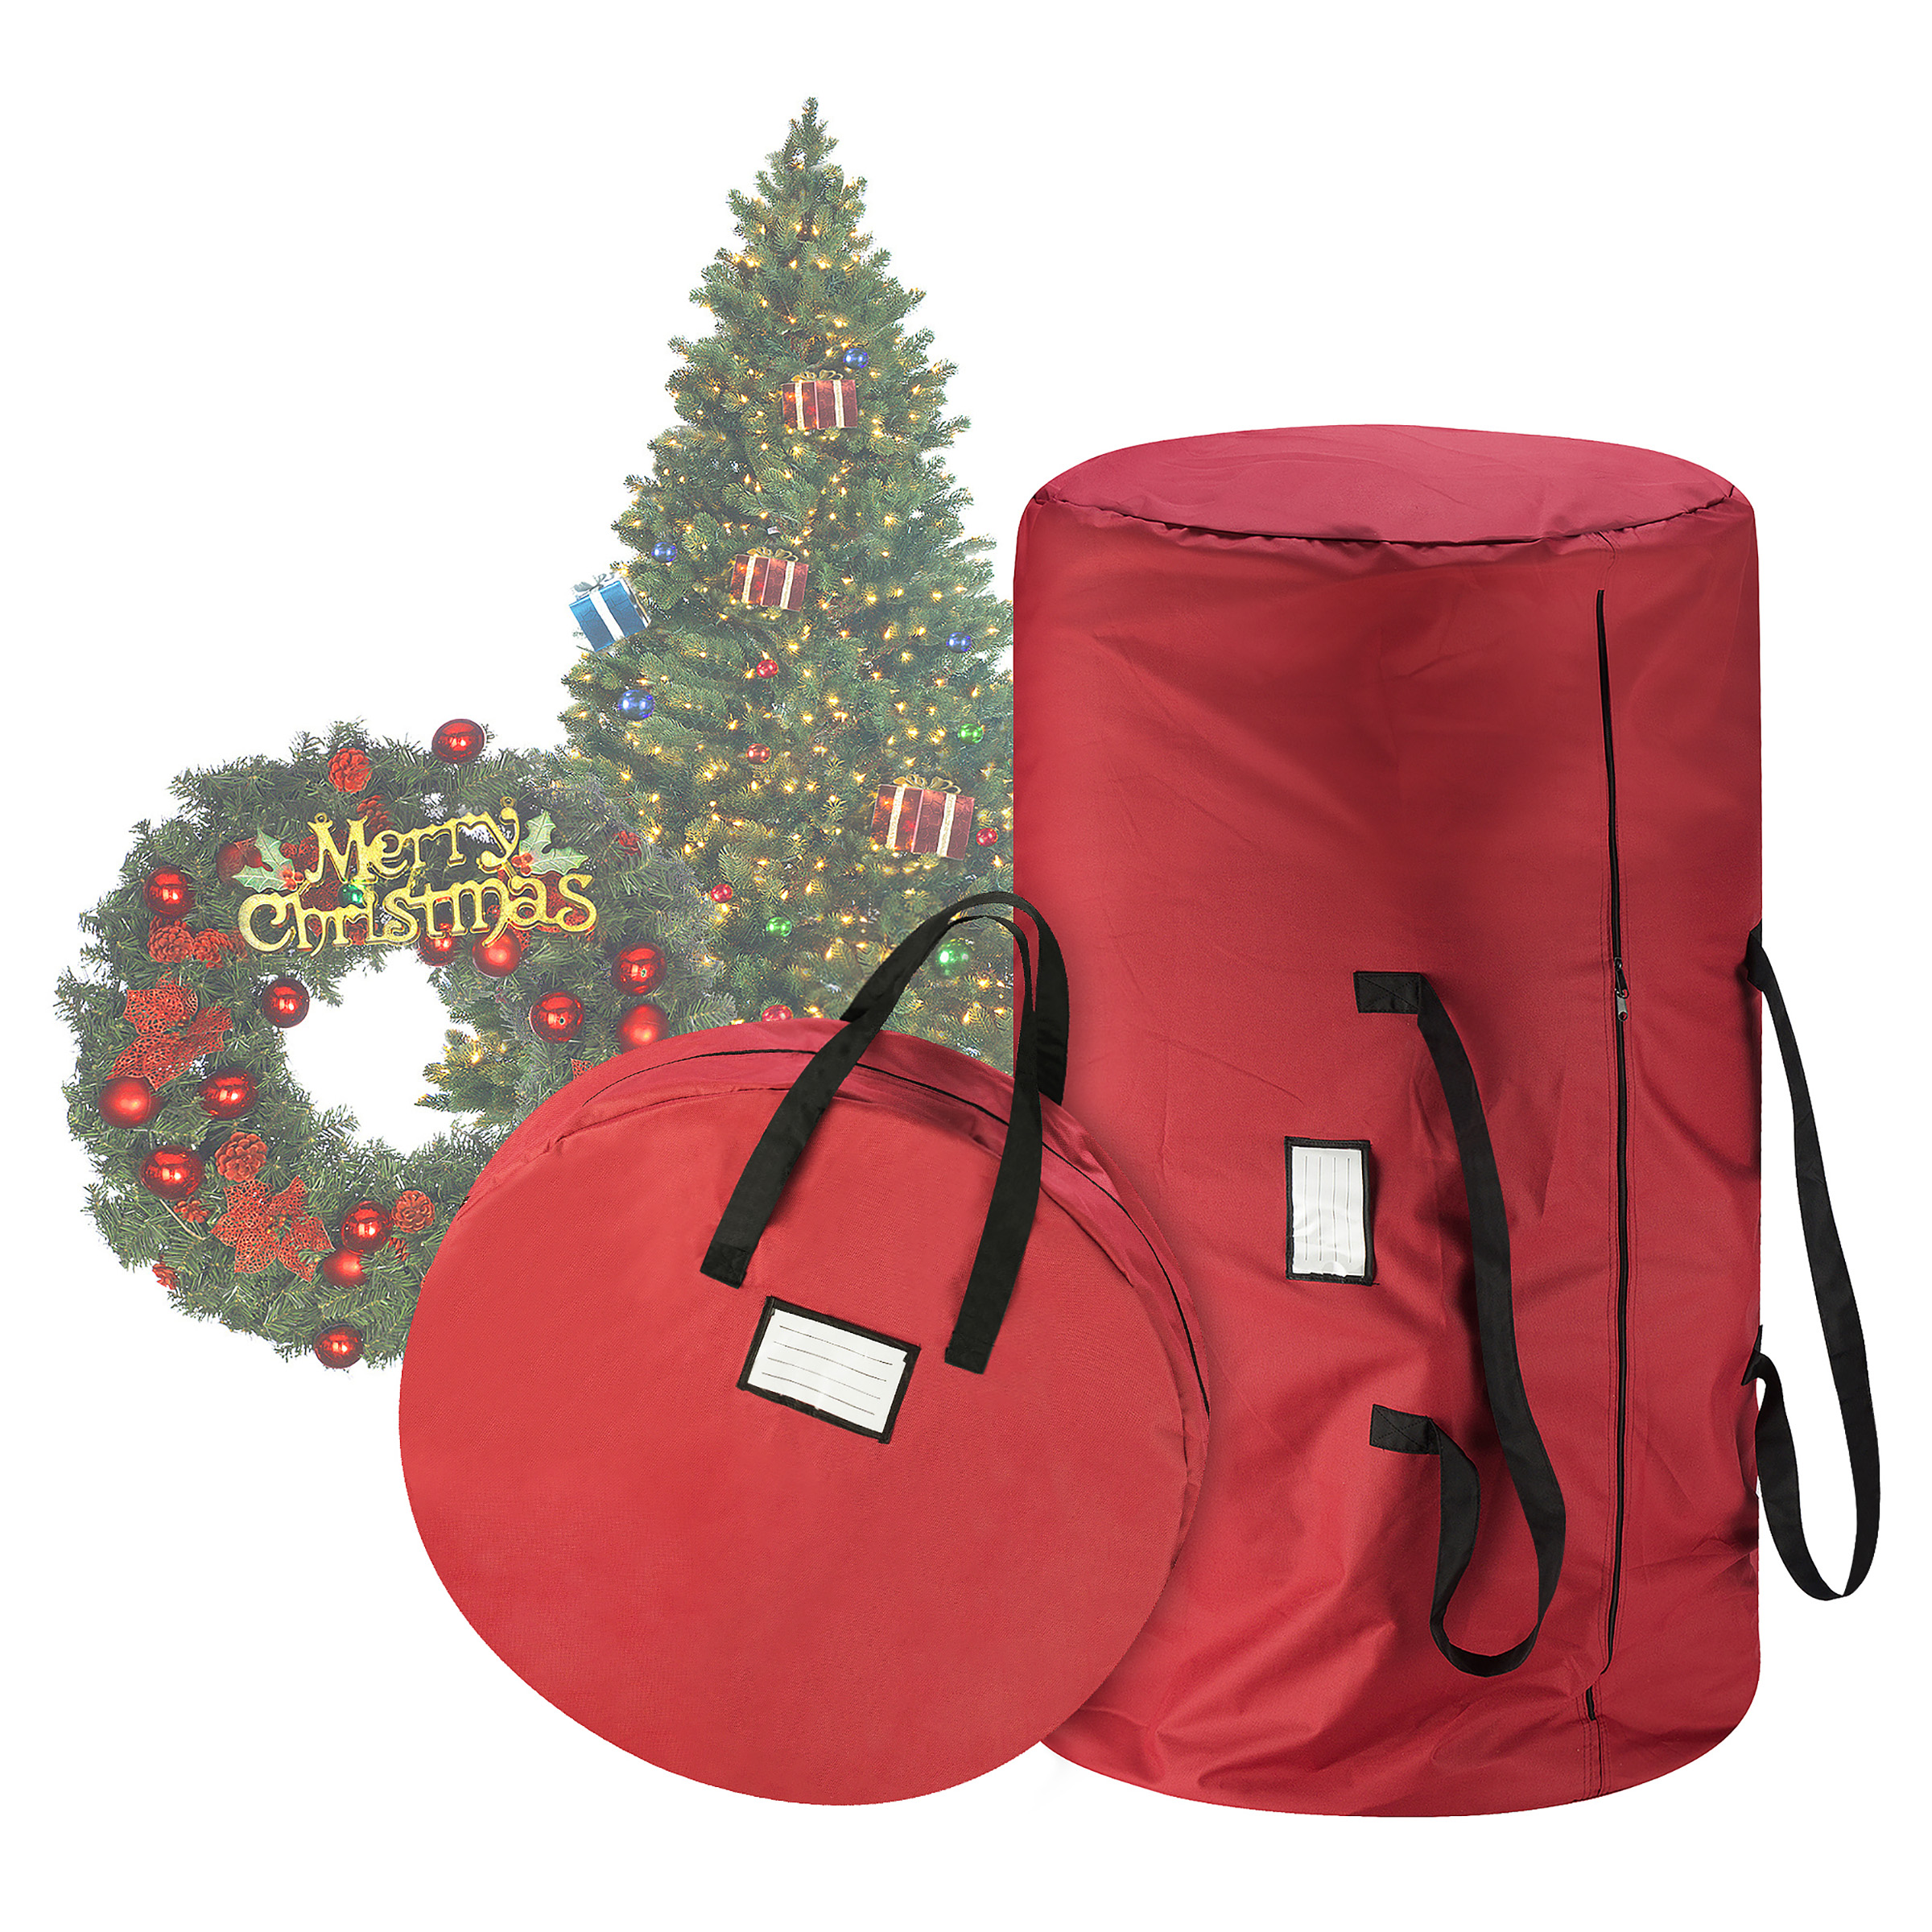 "5086 Tiny Tim Totes Premium Red Canvas Christmas Tree Storage Bag & 30"" Inch Wreath Bag"